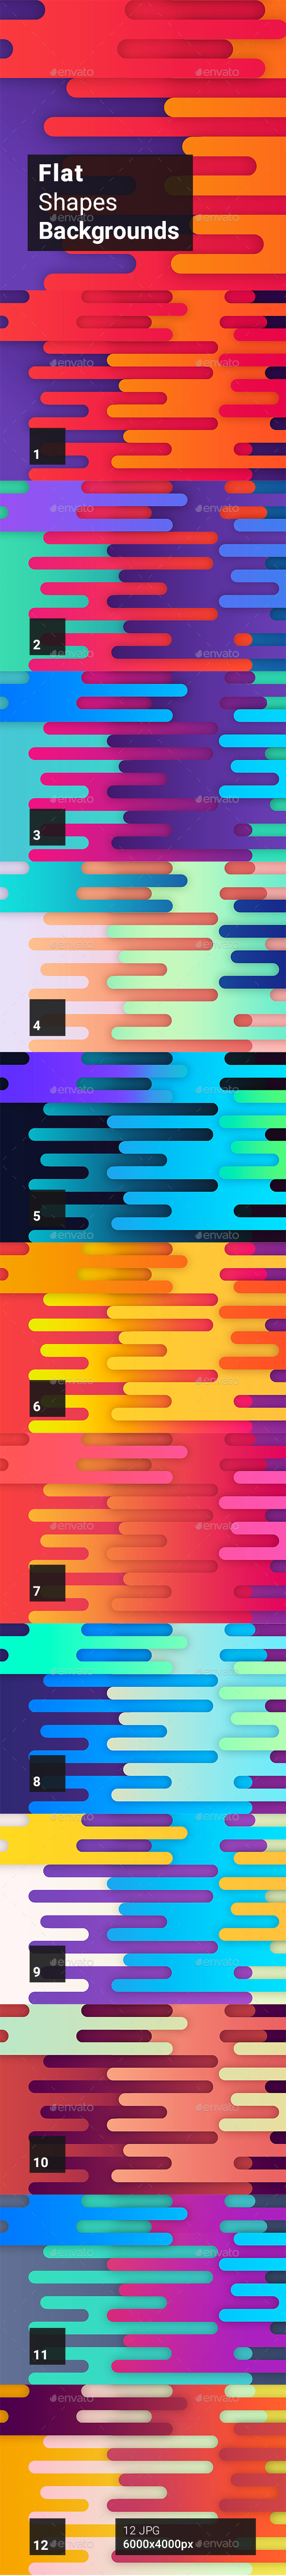 GraphicRiver Flat Shapes Backgrounds 20396799